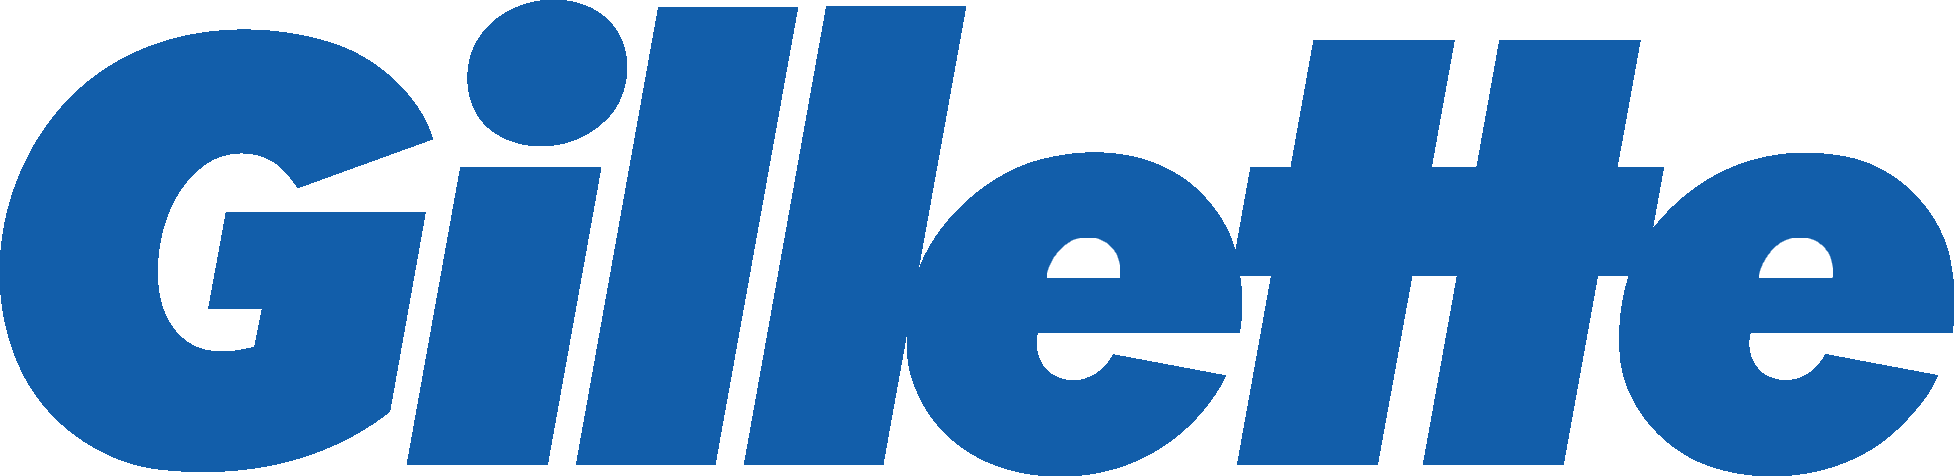 Gillette logo download free clipart with a transparent.